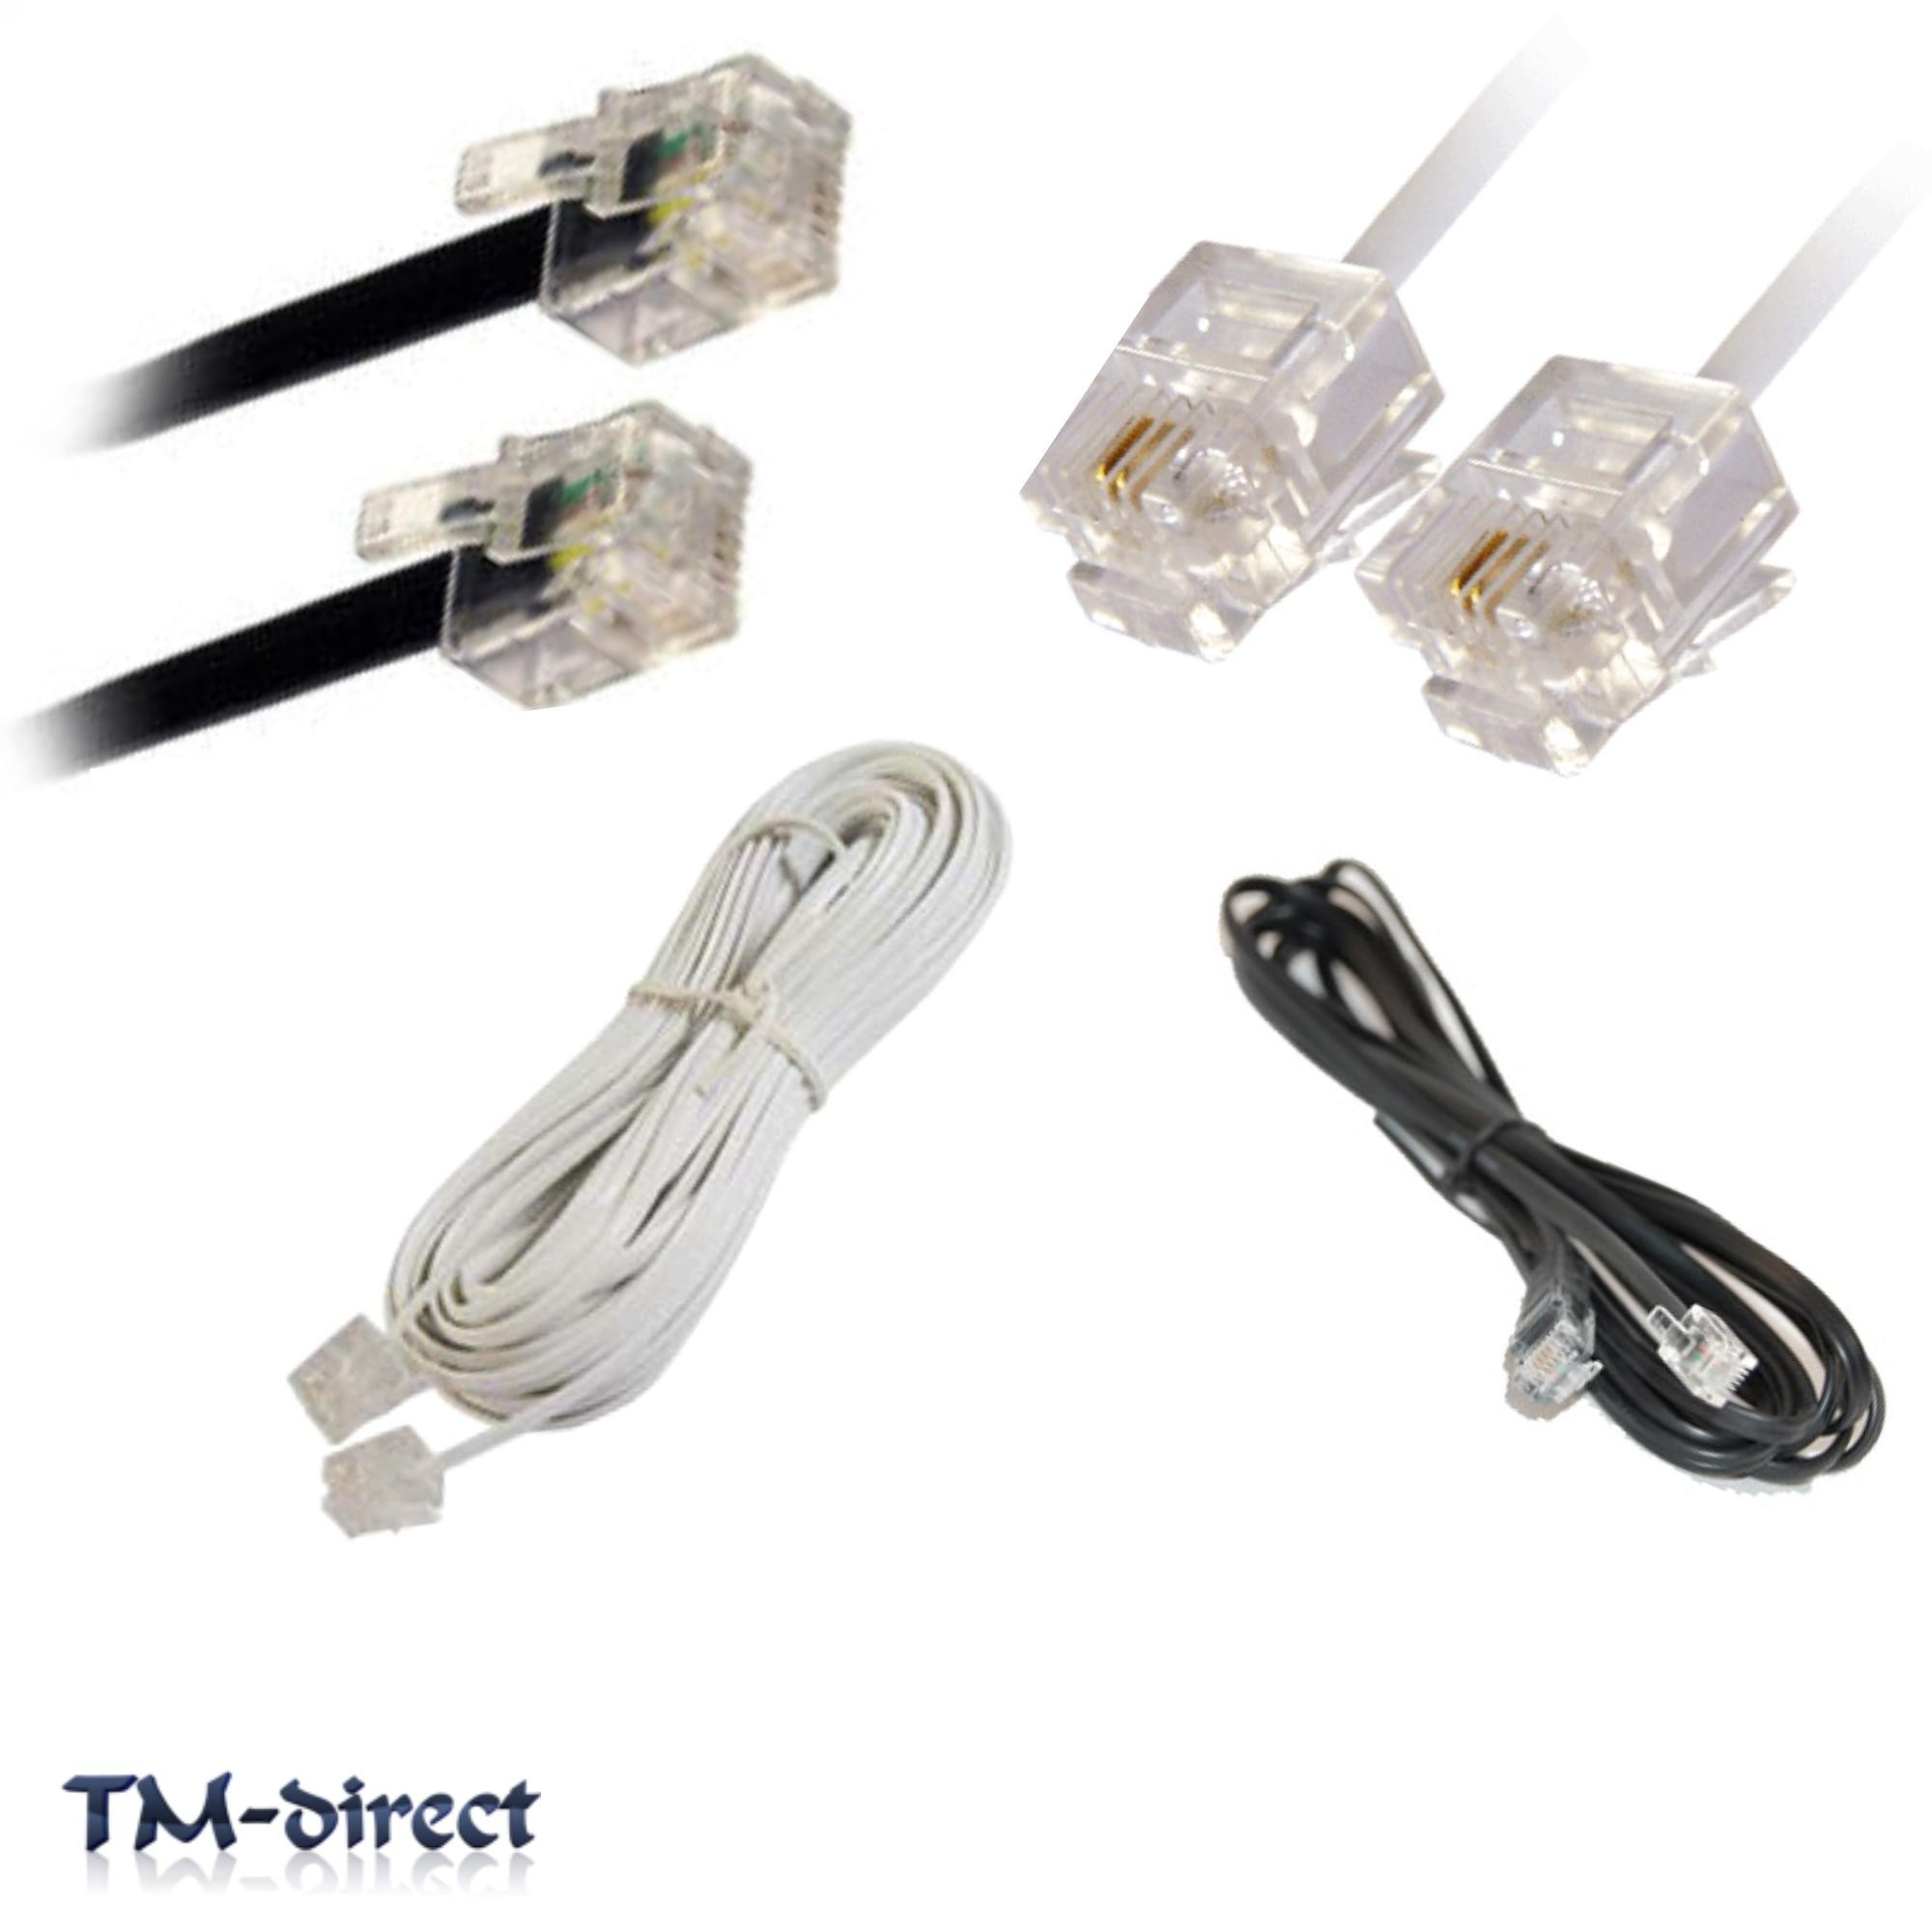 rj11 adsl adsl2 phone high speed broadband internet router cable plug. Black Bedroom Furniture Sets. Home Design Ideas